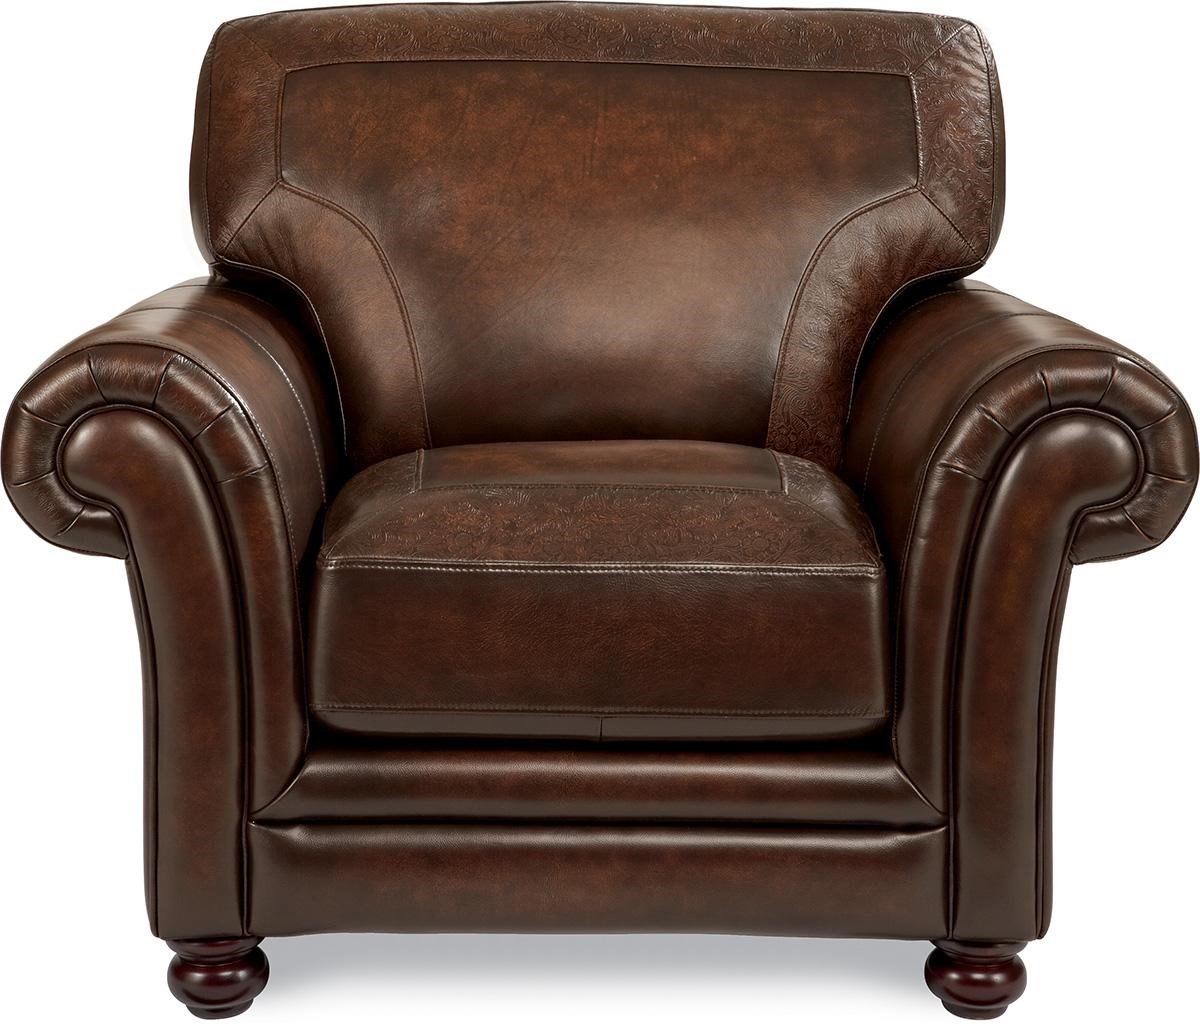 ... Traditional Stationary Chair. Leather Shown No Longer Available From  Manufacturer